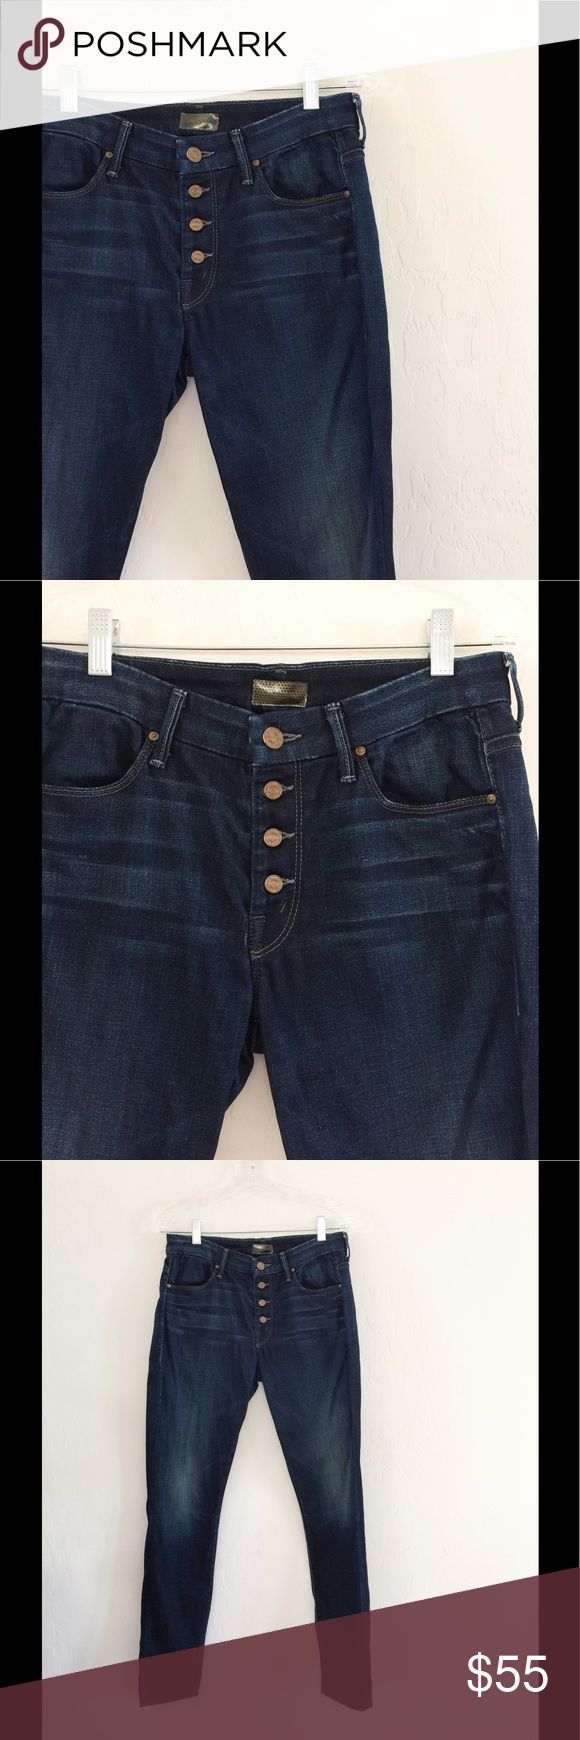 """EUC Mother Jeans Button up Mother jeans that have an AMAZING fit. The buttons give a more fashionable look and pull in the tummy. 👌🏼 Beautiful med wash. Measurements : Rise: 9"""" 